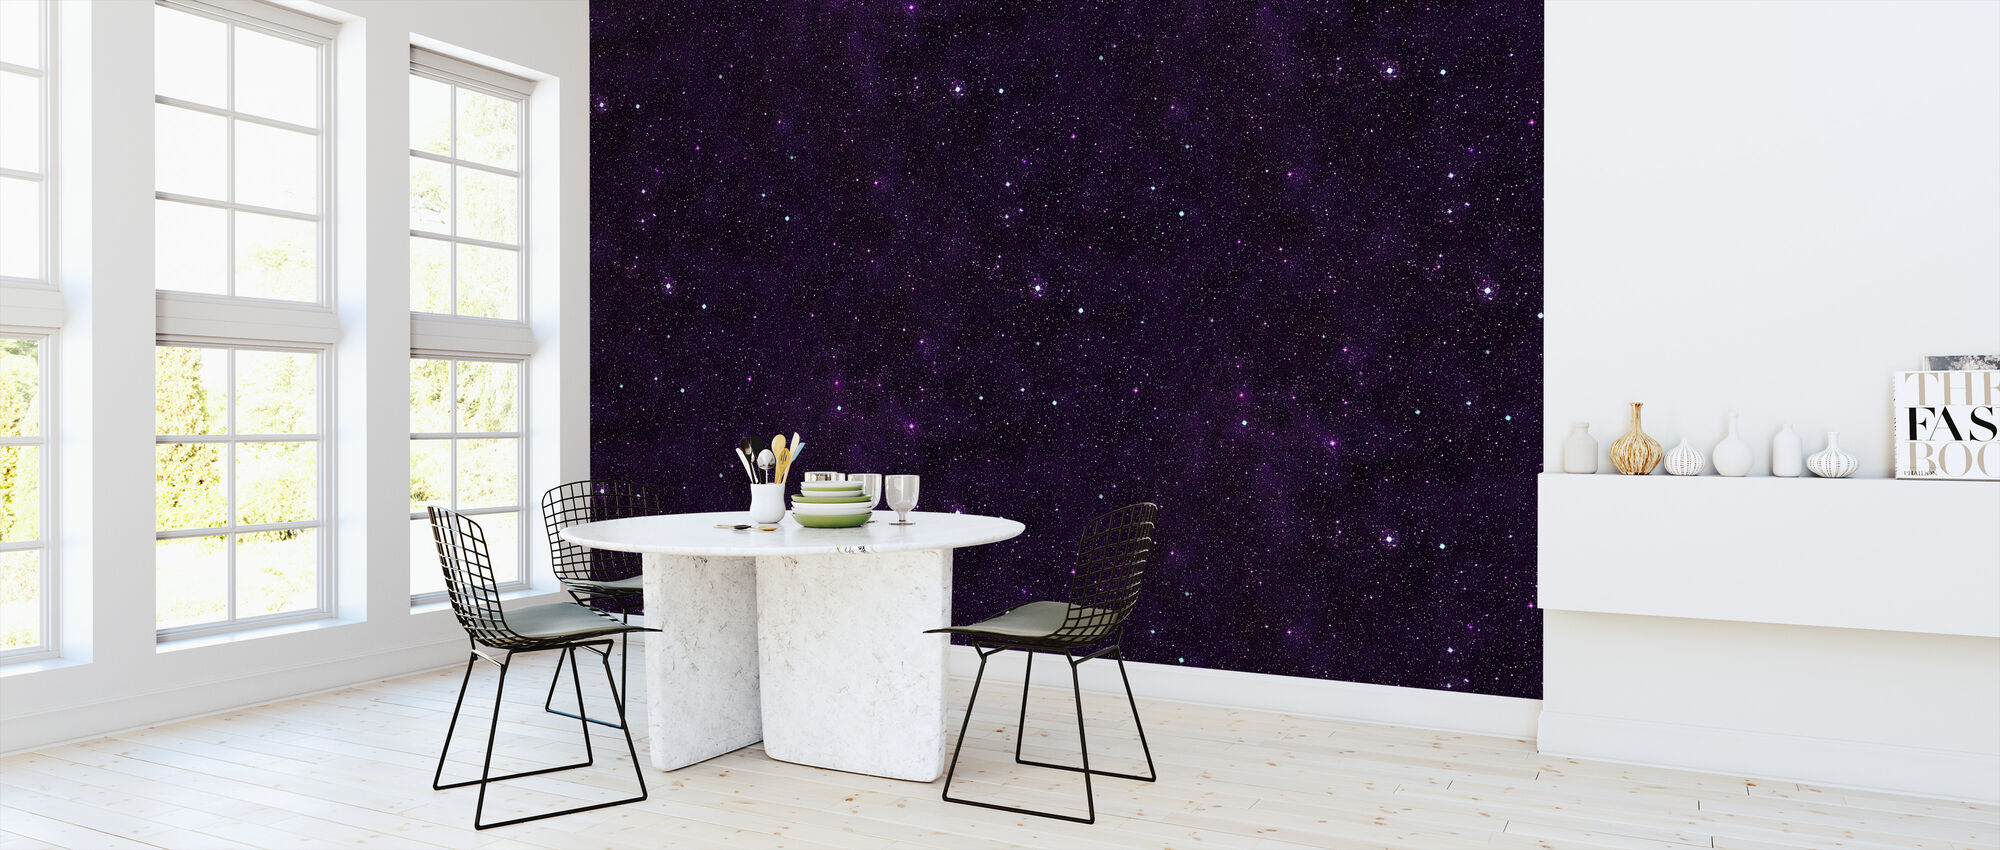 Starfield Purp - Wallpaper - Kitchen